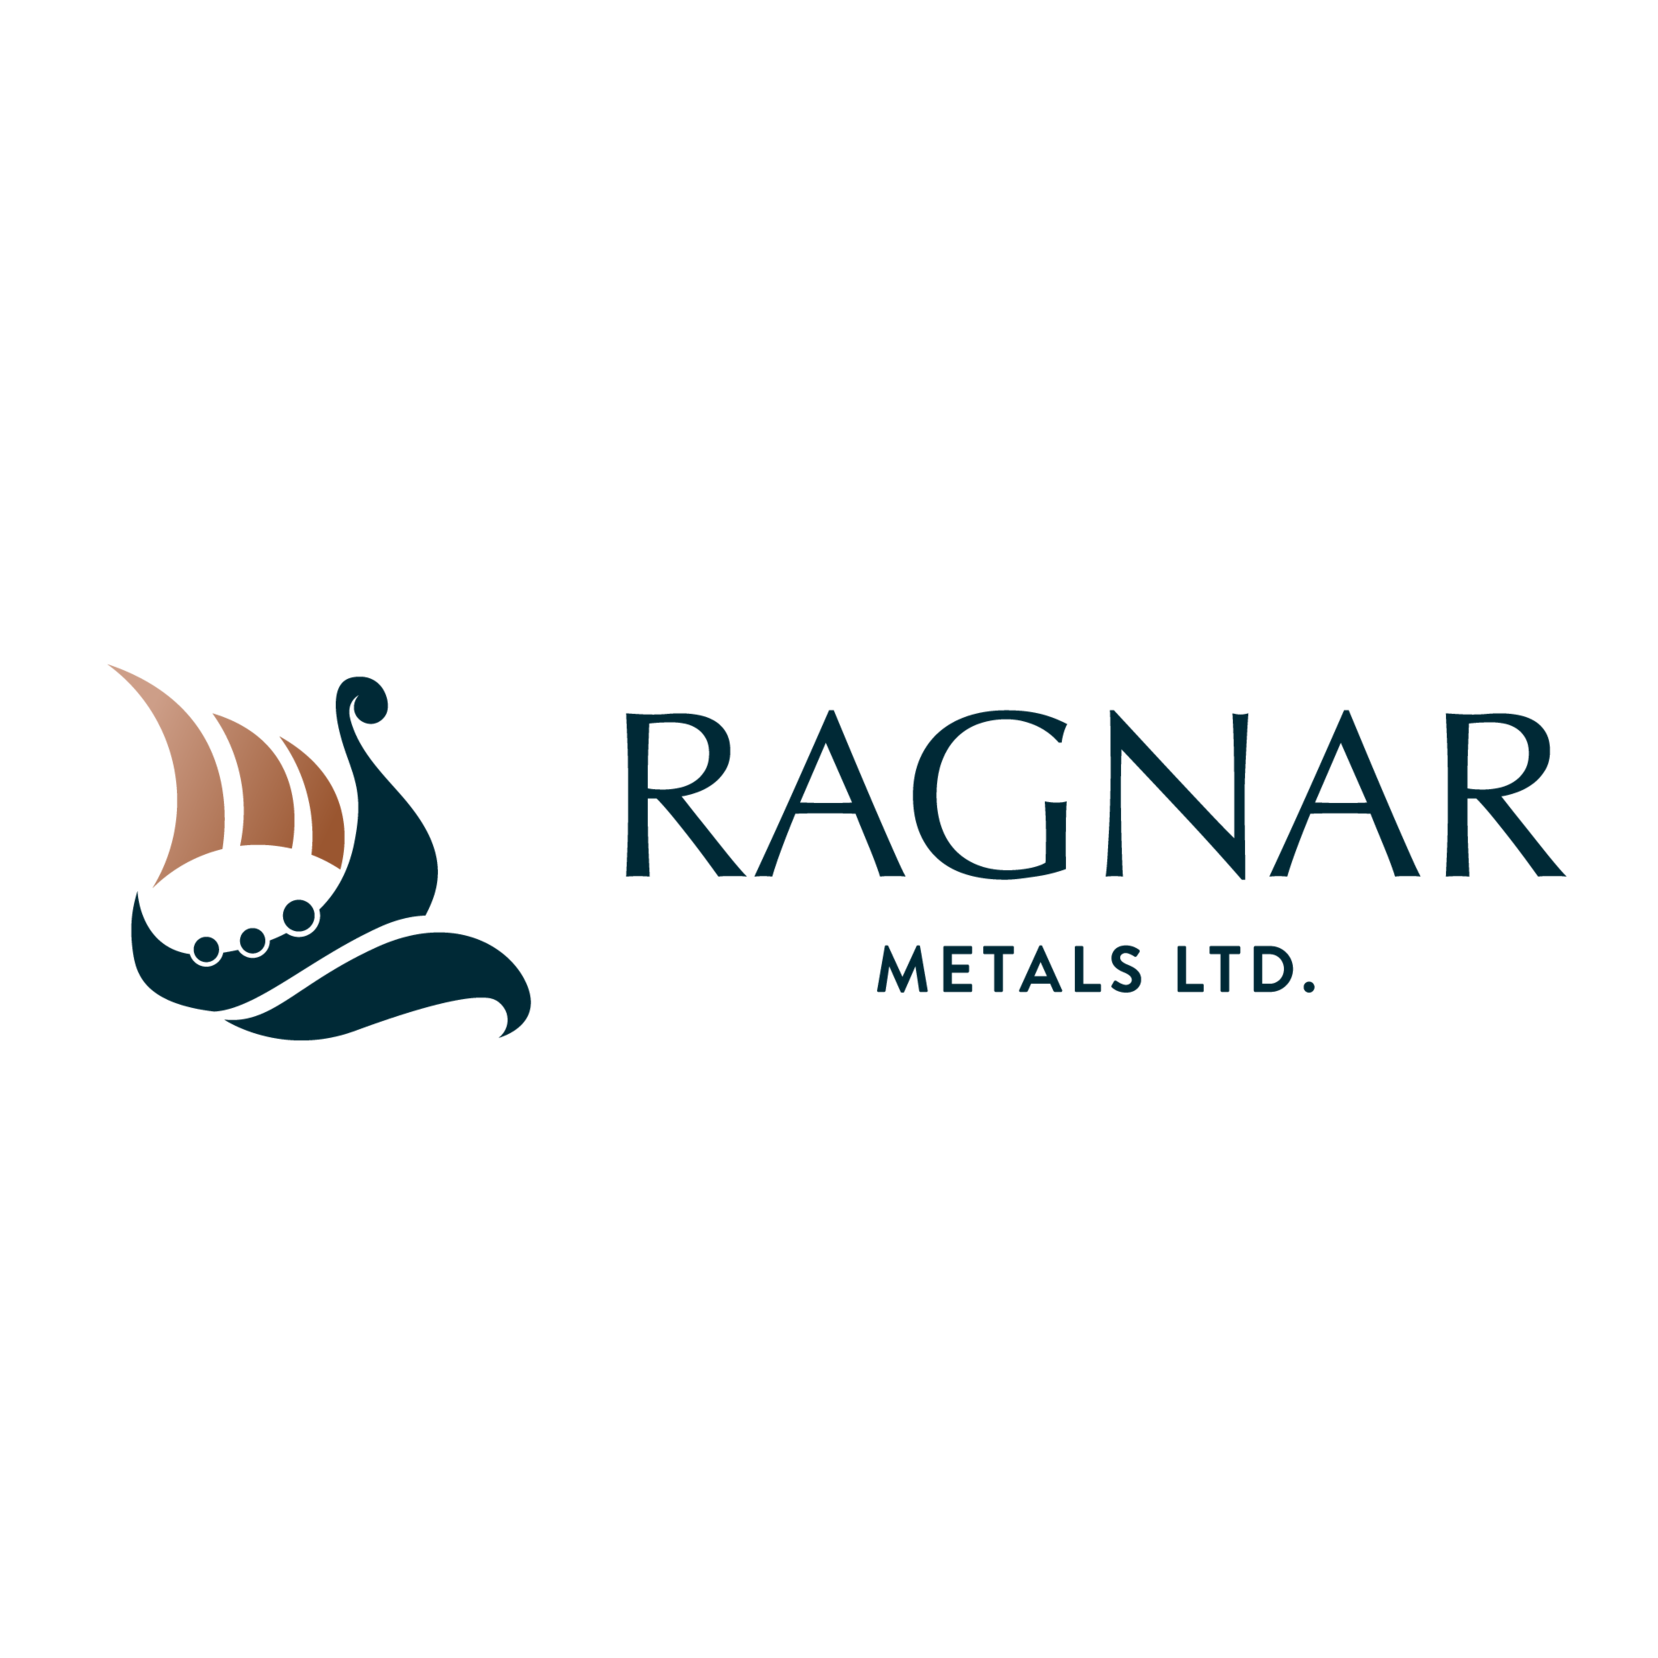 RAGNAR METALS LIMITED